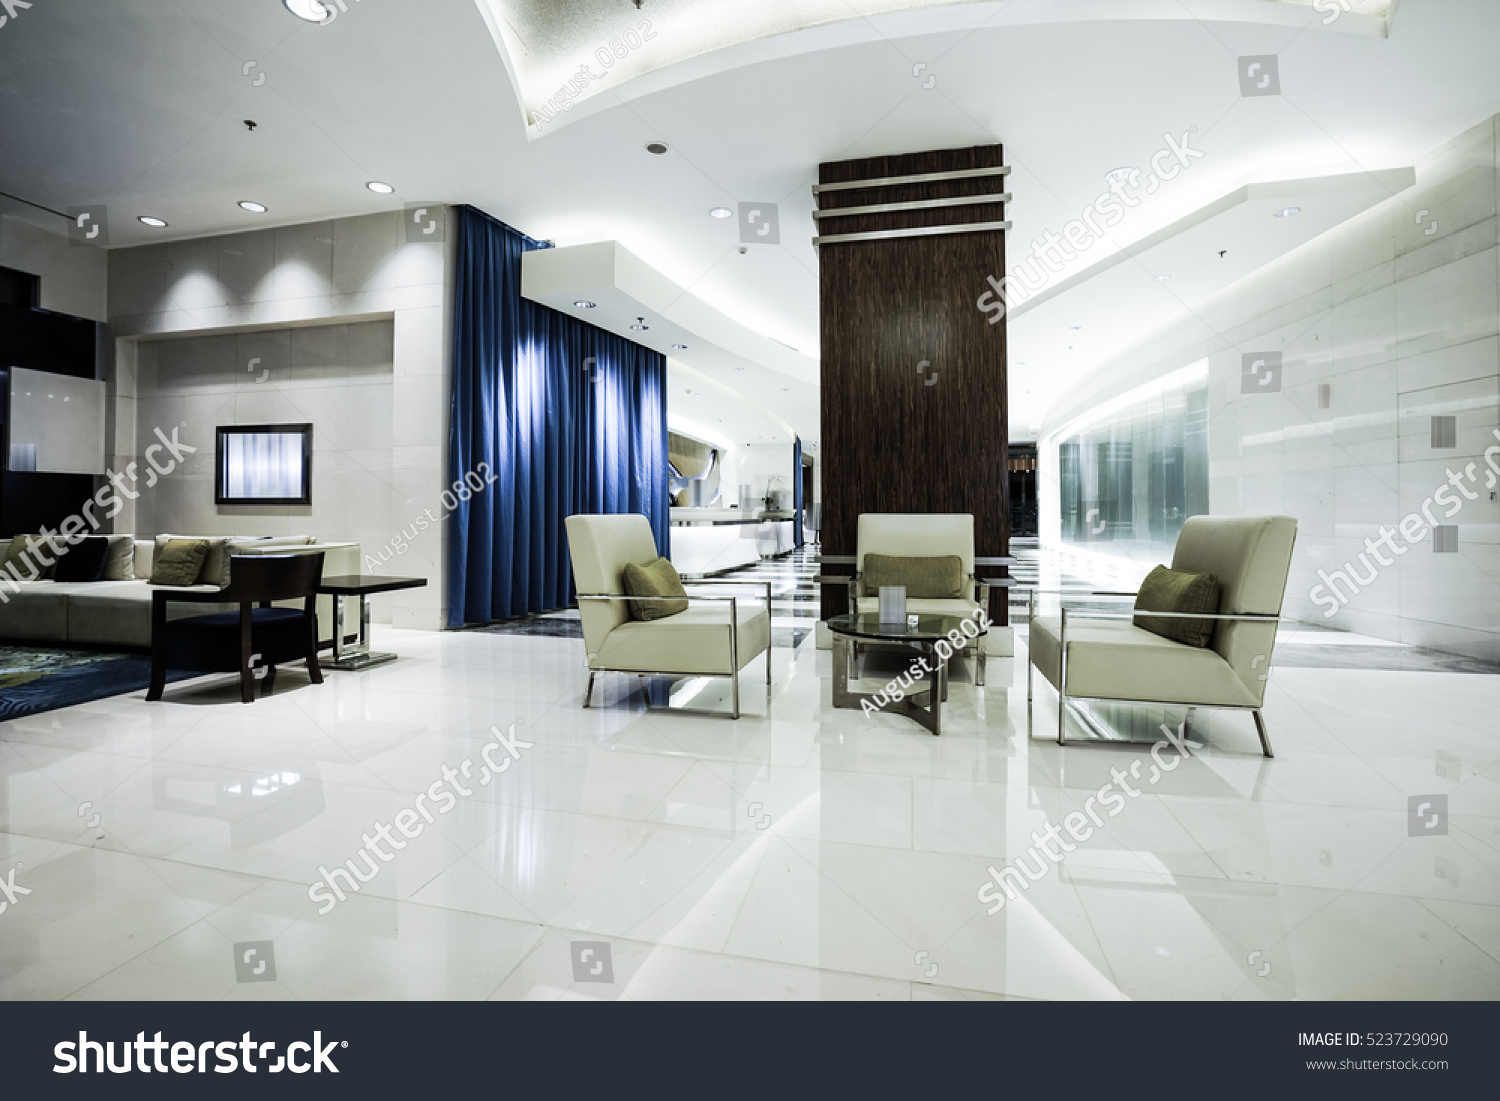 Luxury lobby interior